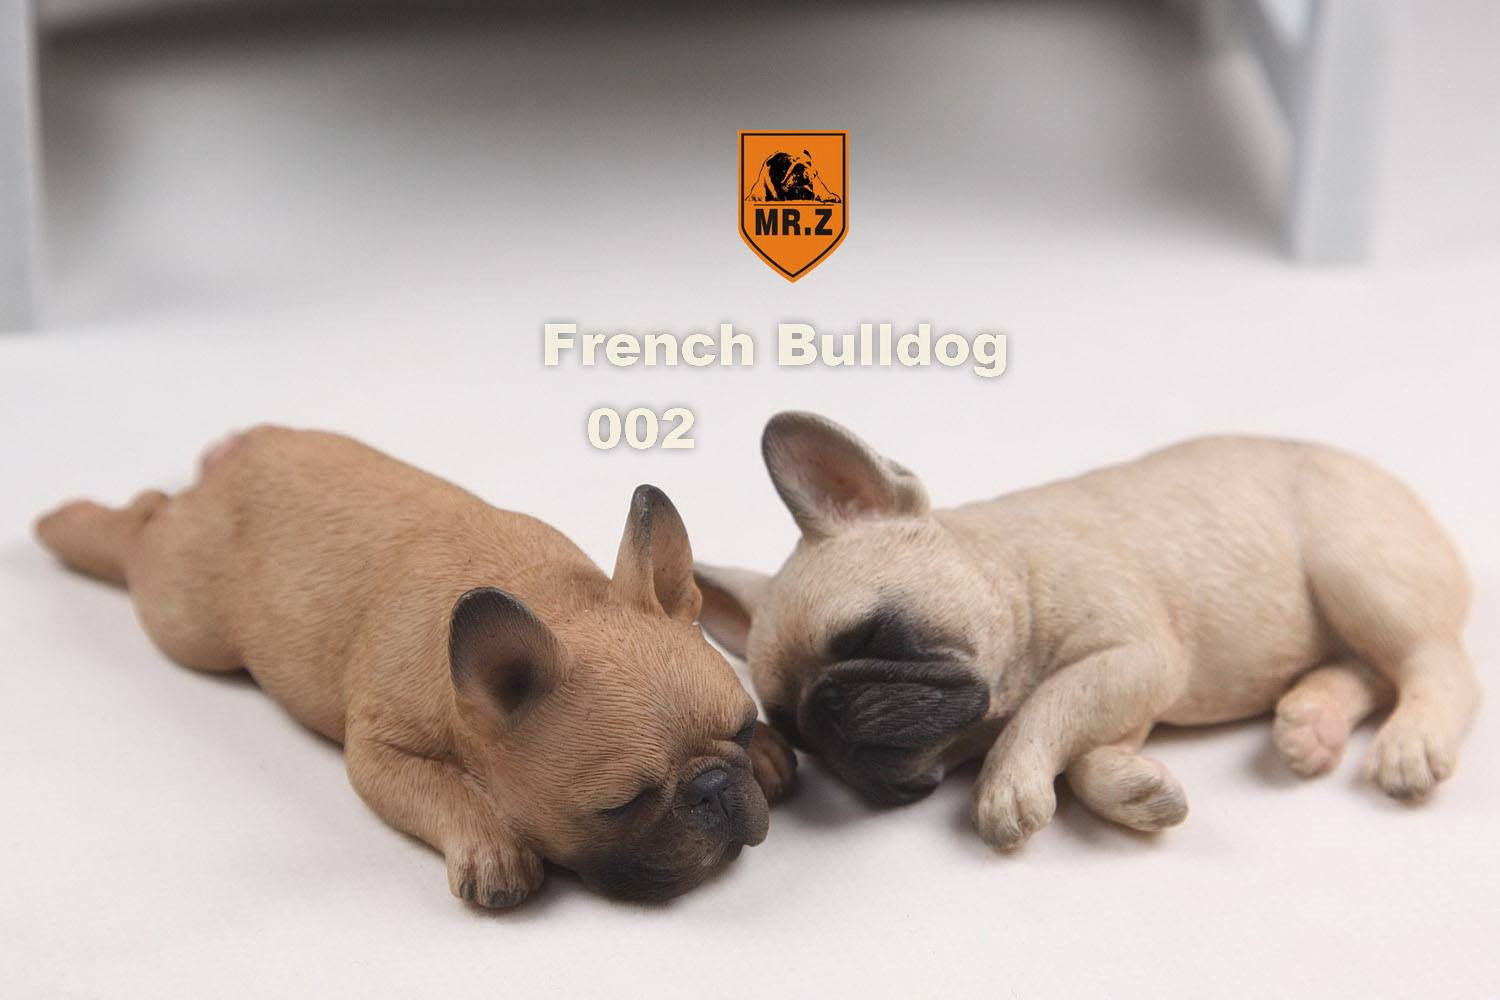 MR.Z - Real Animal Series No.9 - 1/6th Scale French Bulldog (Sleep Mode) 001-005 - Marvelous Toys - 8